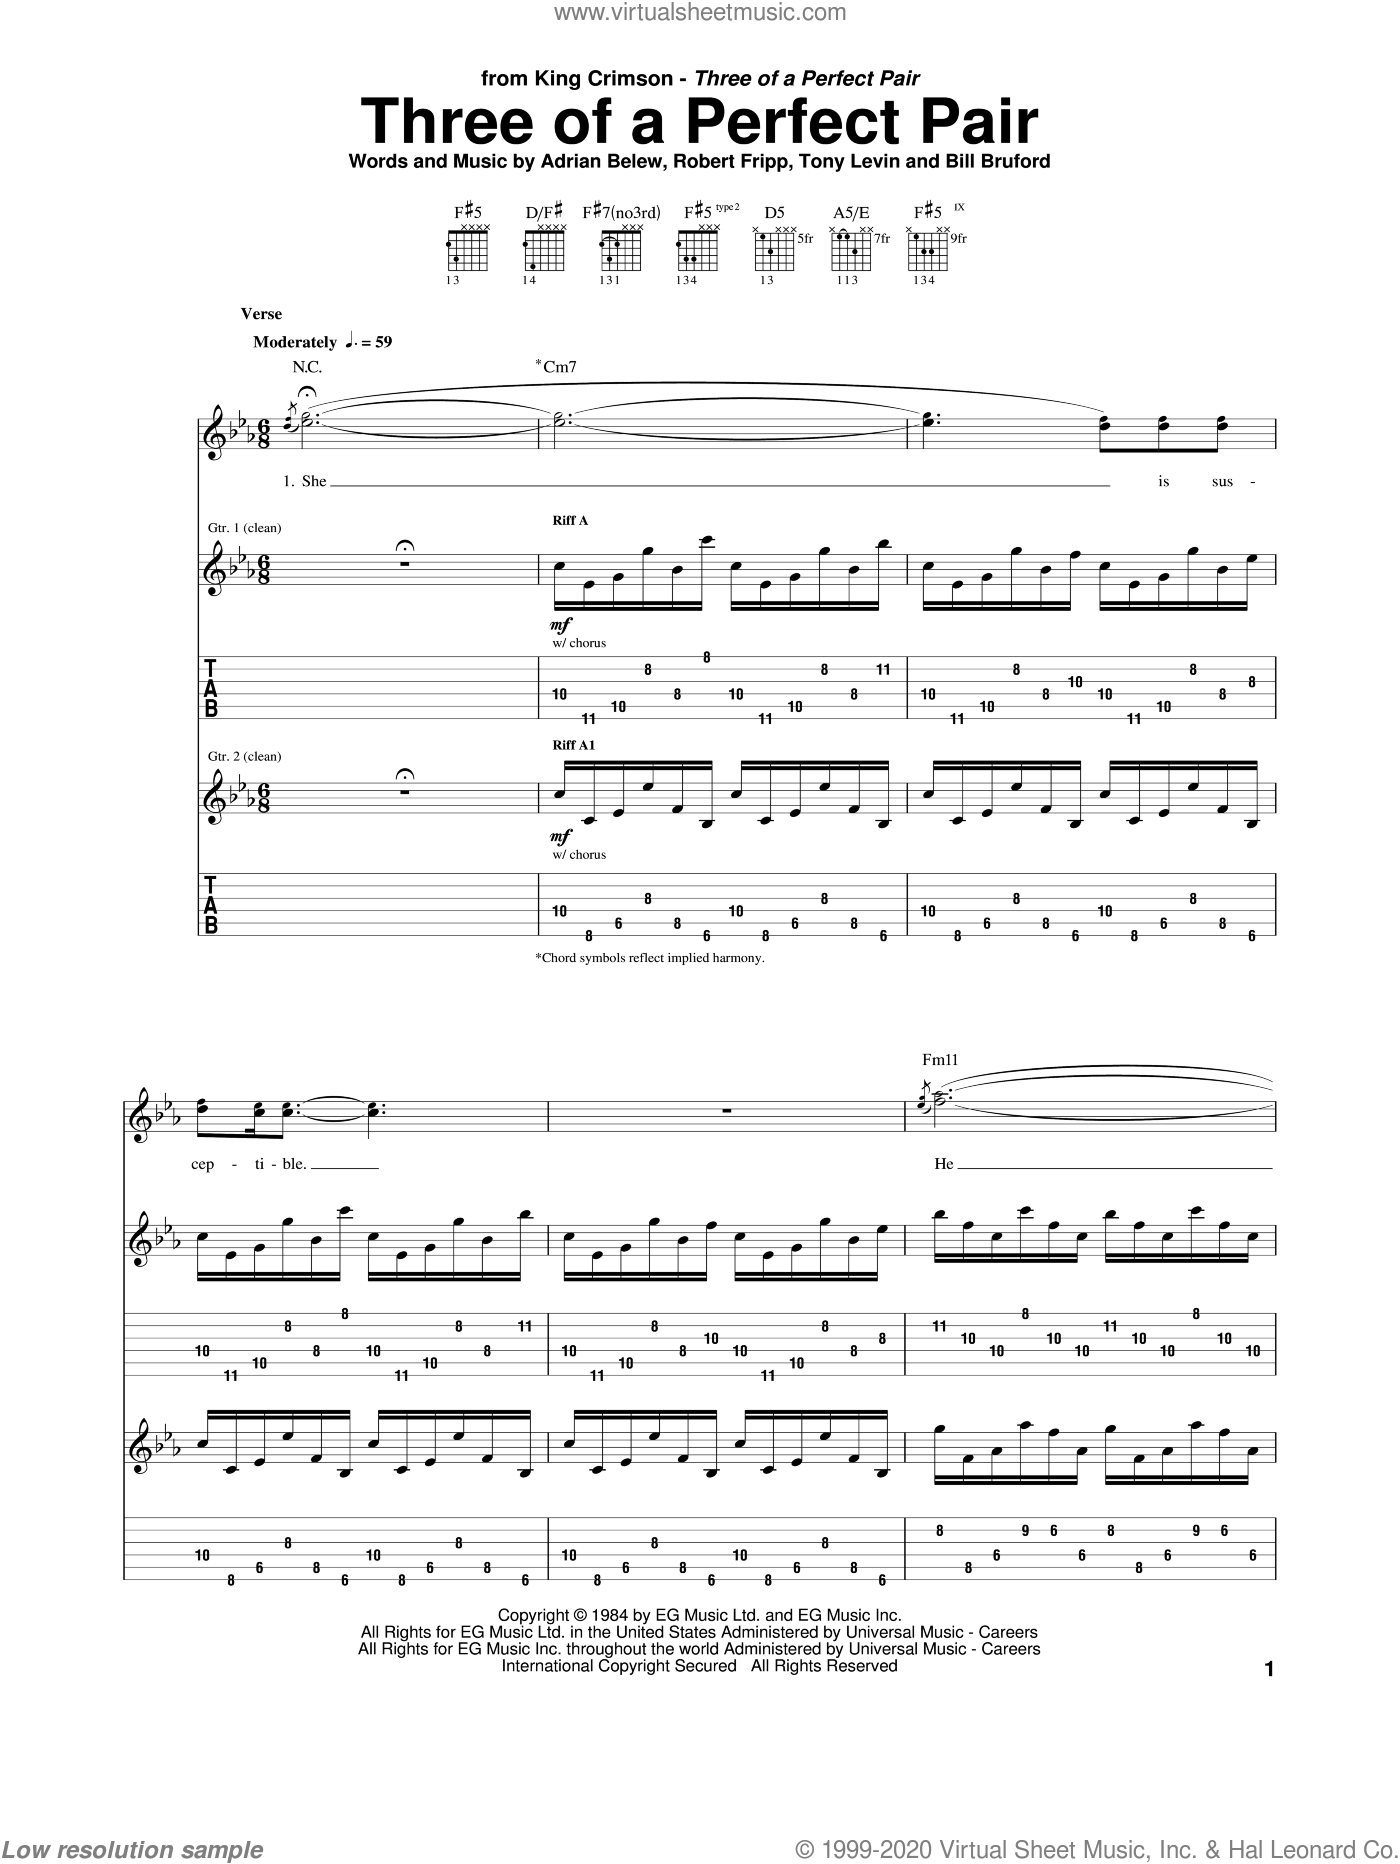 Three Of A Perfect Pair sheet music for guitar (tablature) by Tony Levin, Bill Bruford and Robert Fripp. Score Image Preview.